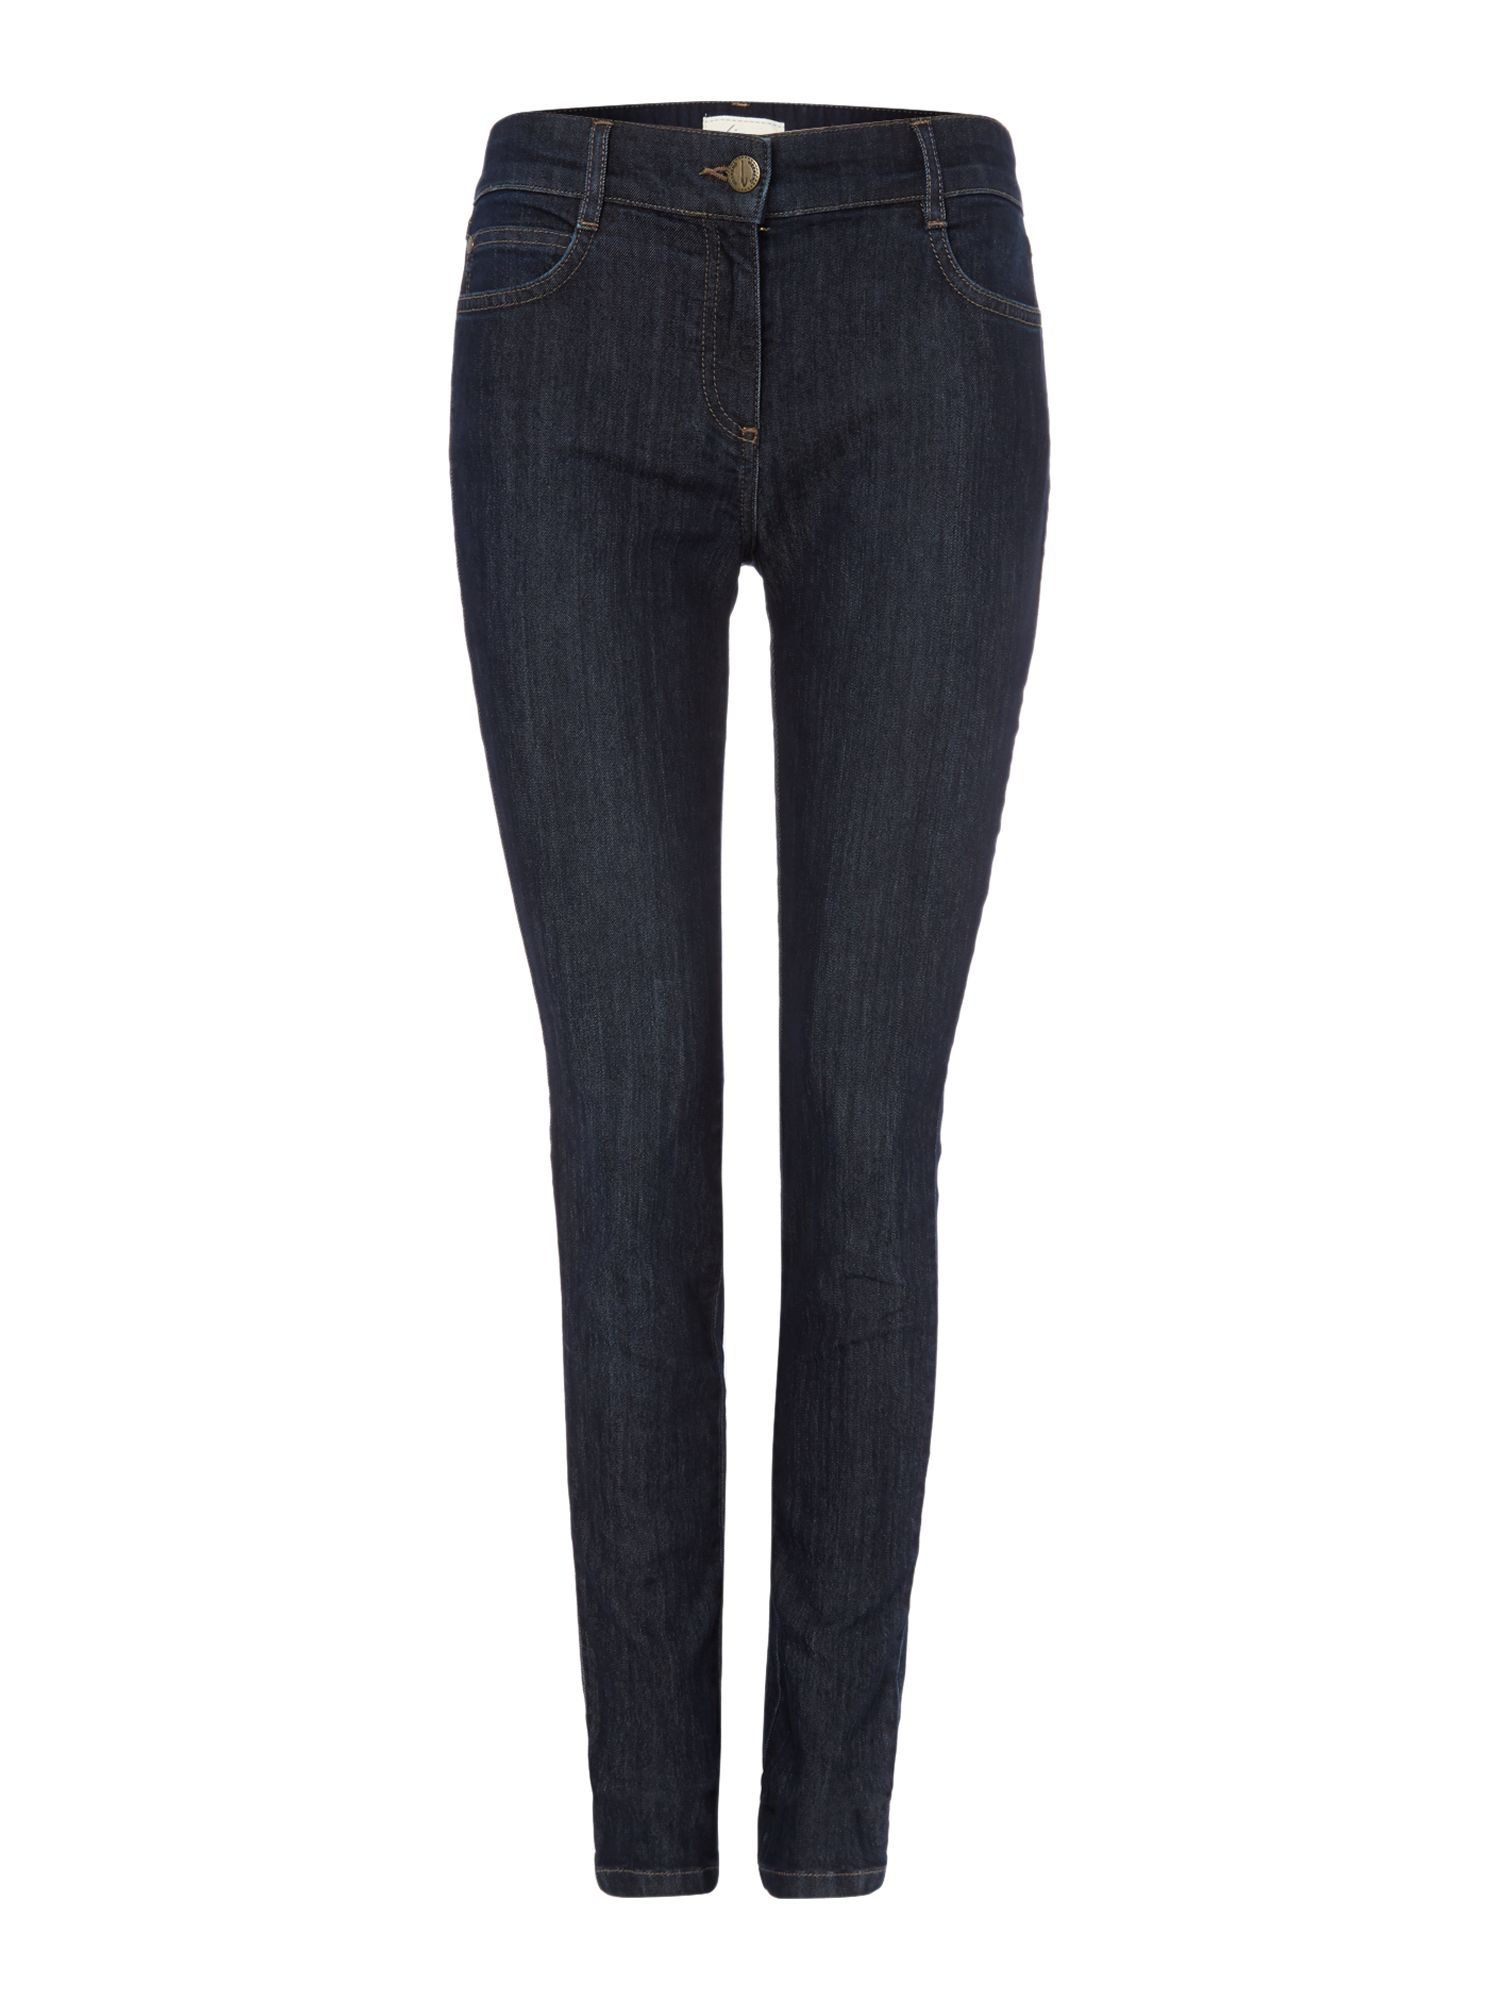 Shoreditch skinny jeans